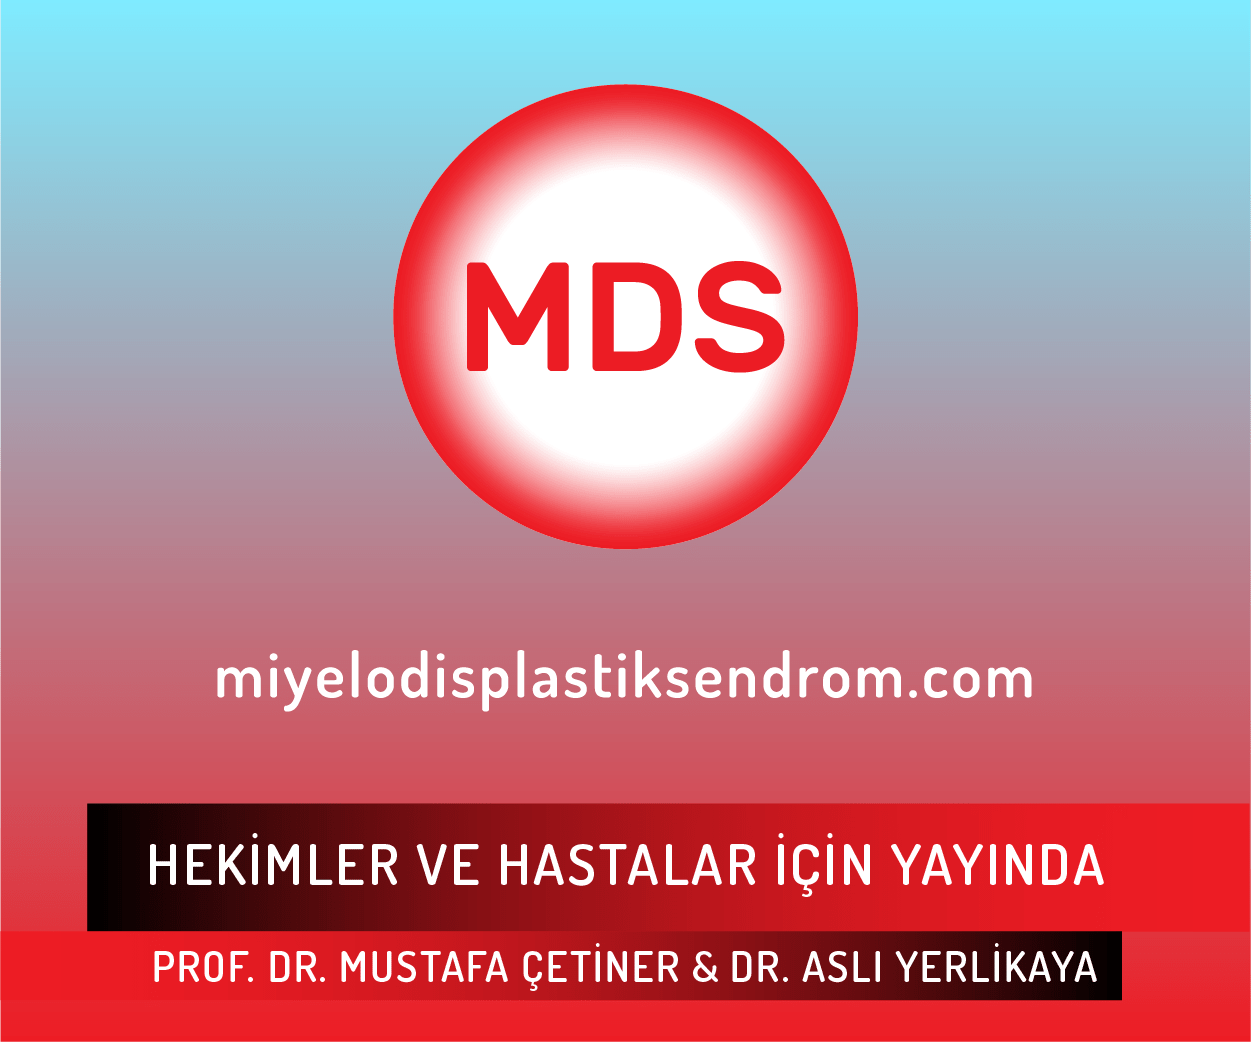 MDS-02.png